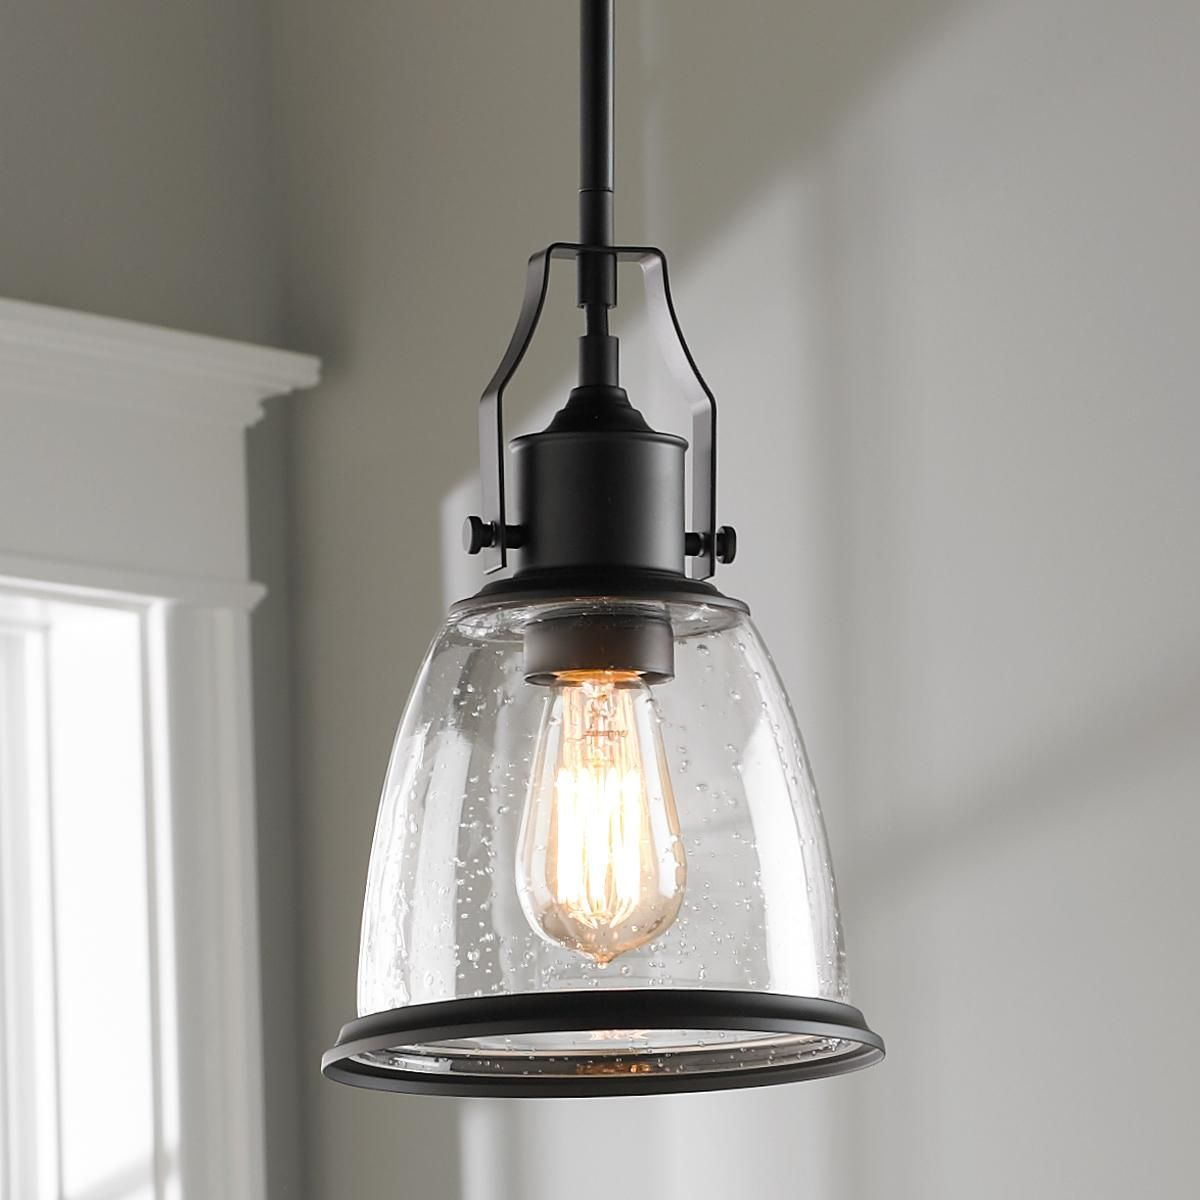 Kitchen Pendant Lighting Glass Shades Classic Bell Shade Pendant In 2019 Industrial Chic